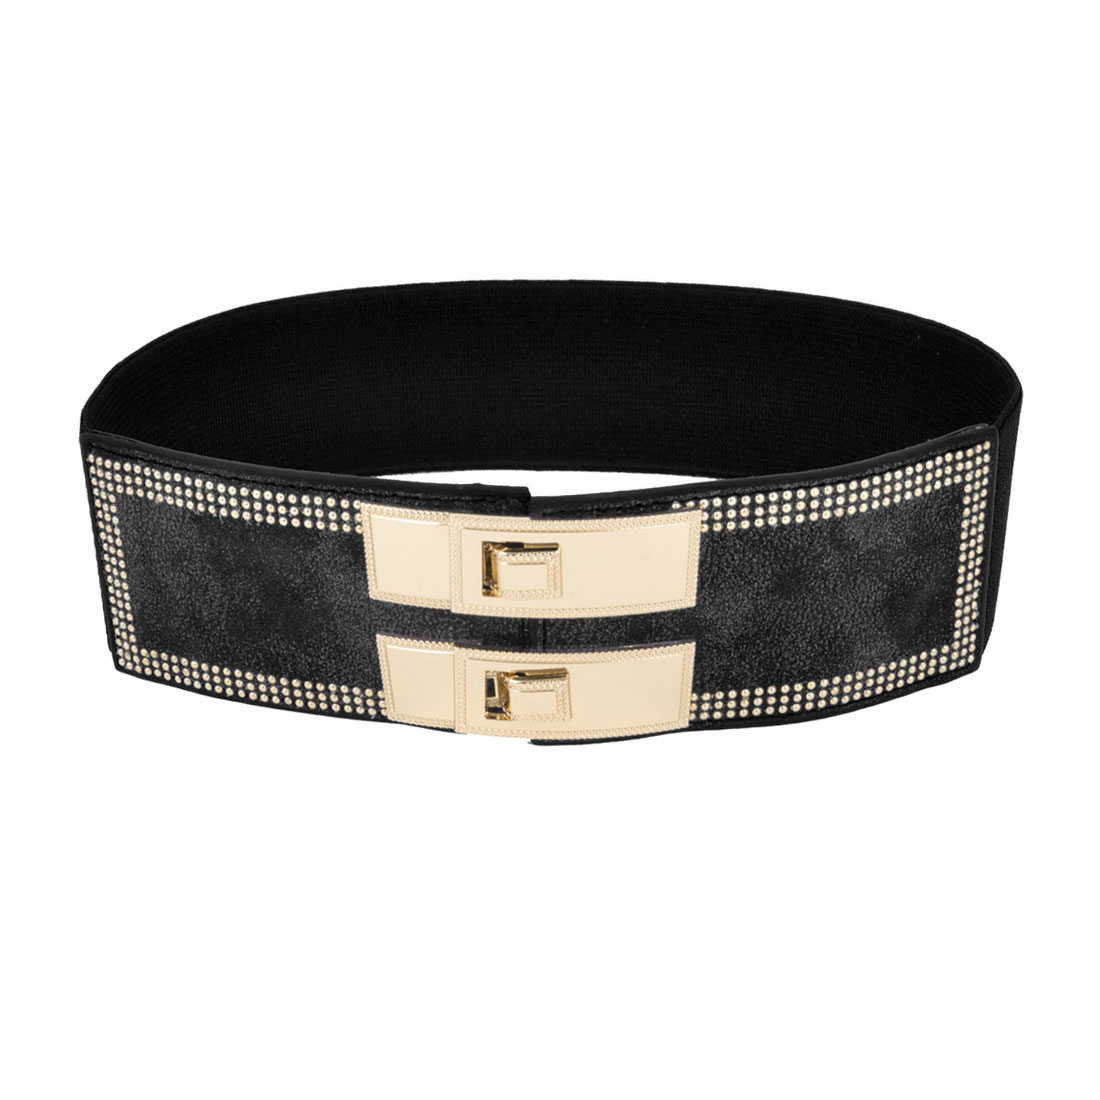 Ladies Metal Beads Detail Interlocking Buckle Elastic Waist Belt Black